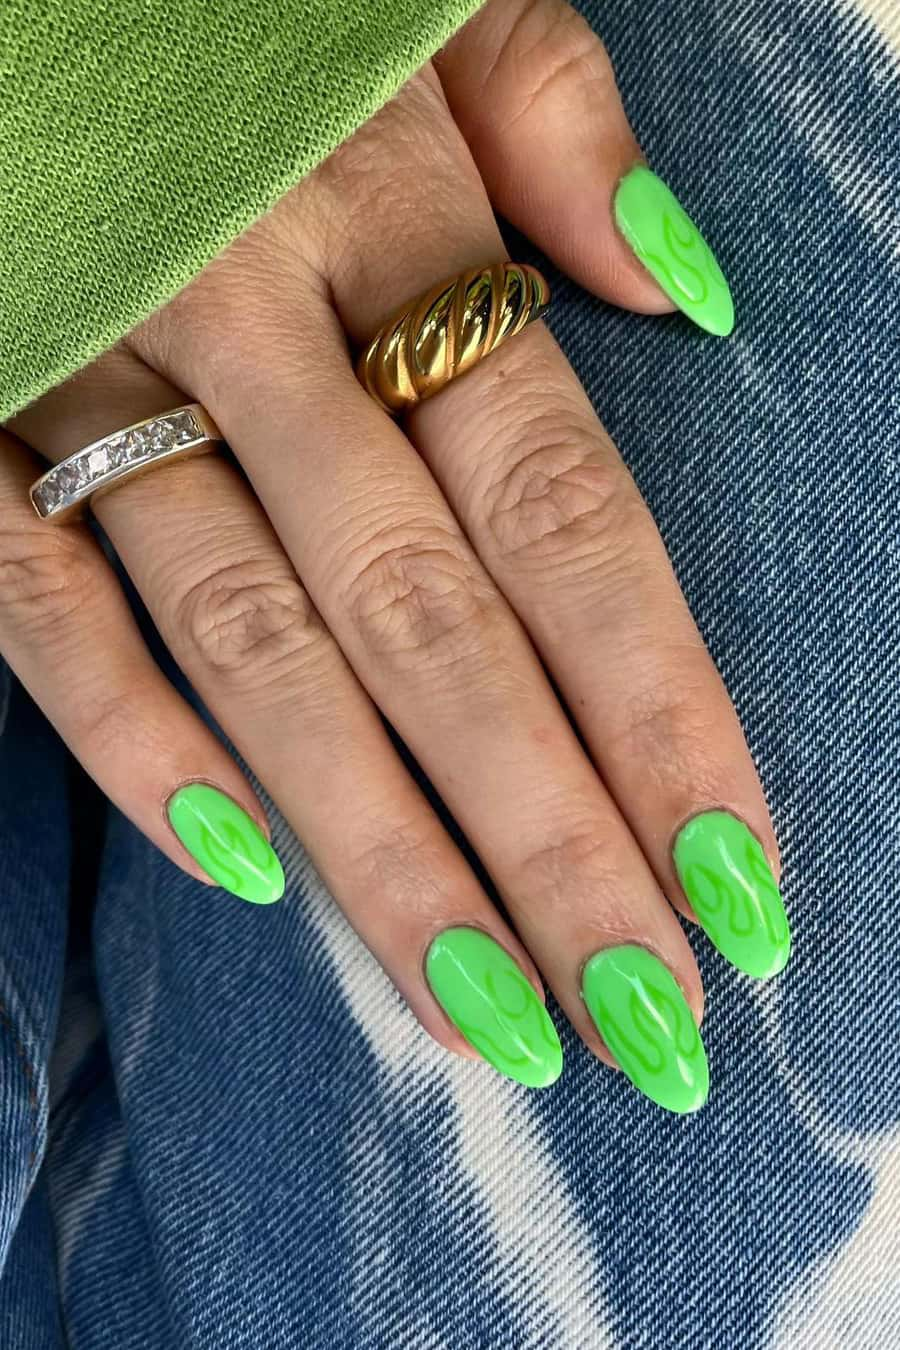 Neon Nail Designs In 2021